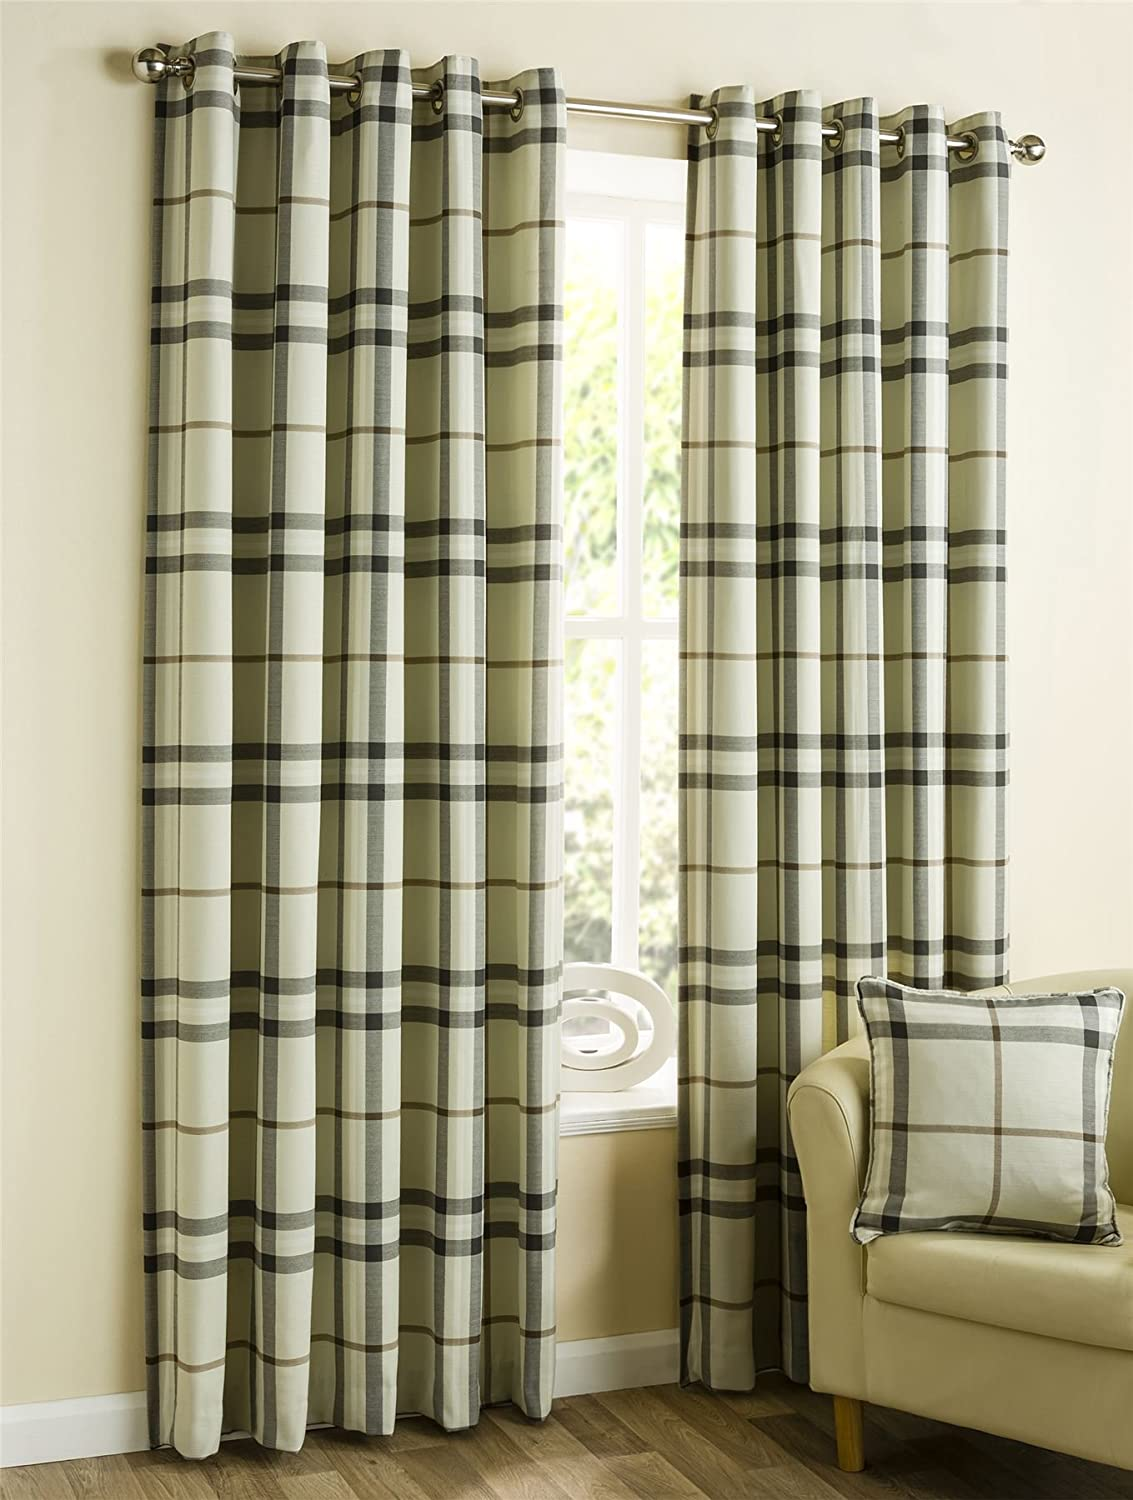 Homescapes Natural Beige Tartan Check Eyelet Ring Top Lined Curtain Pair - 117cm (46